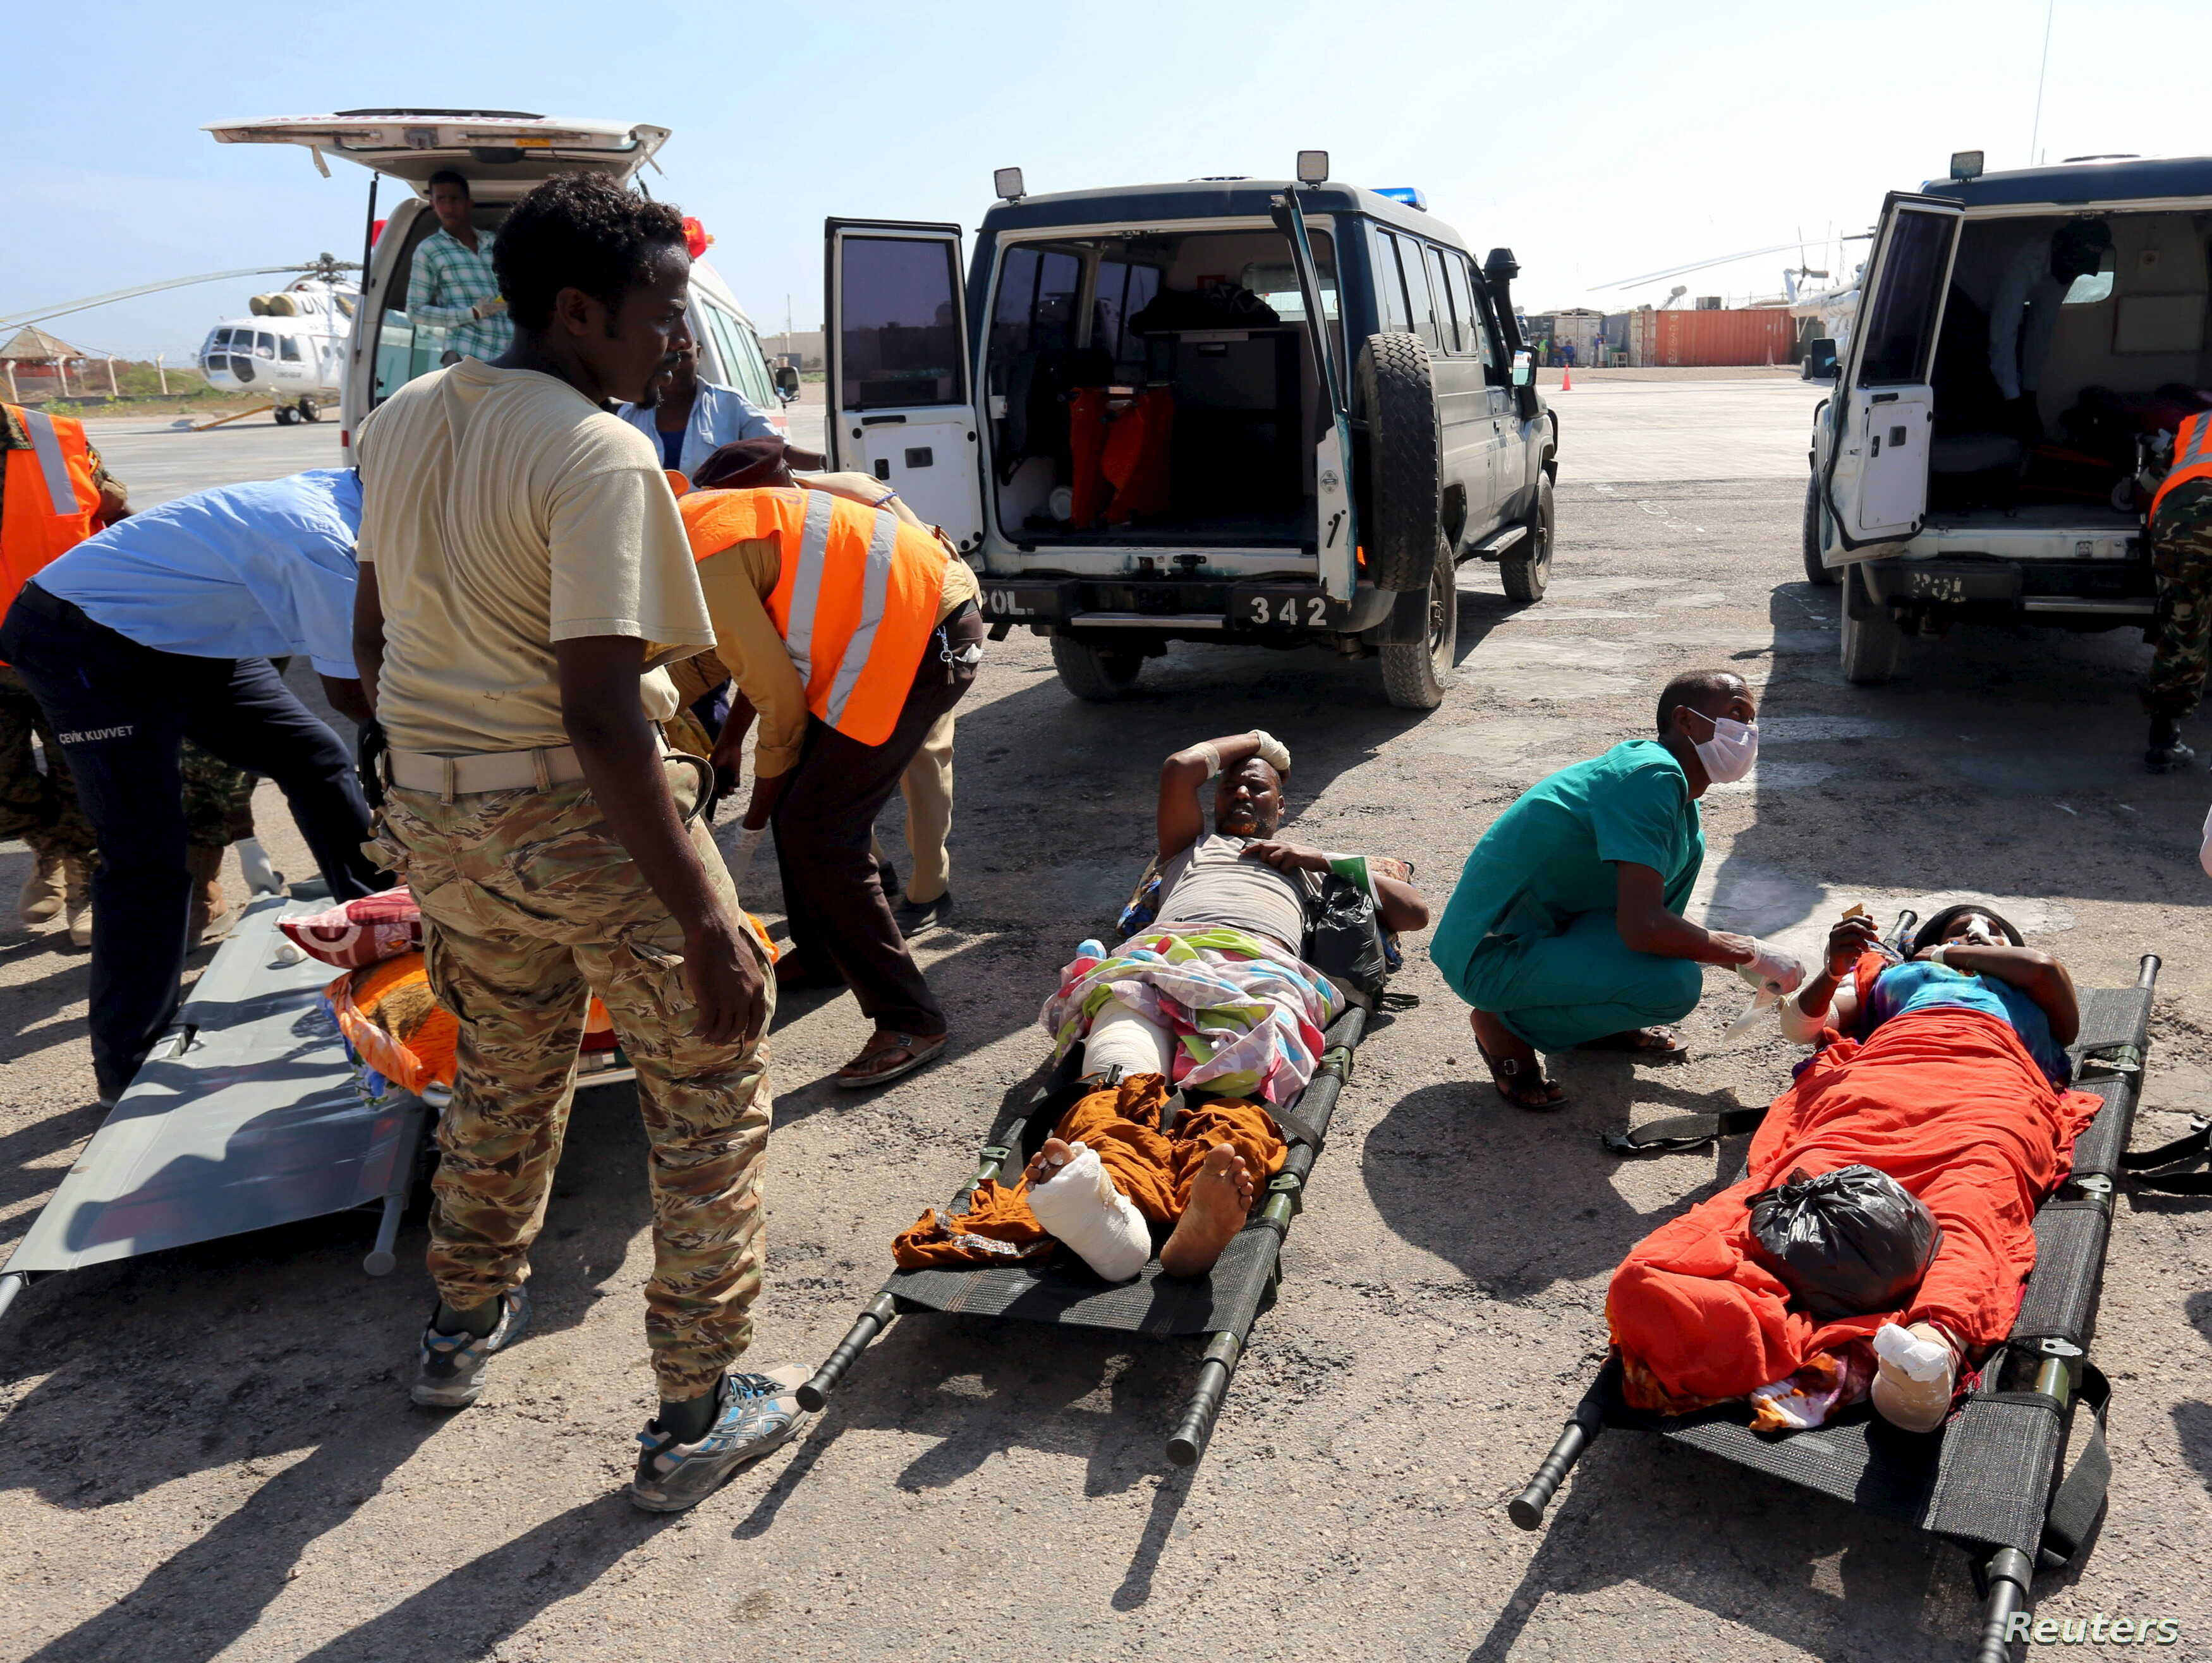 Victims of a suicide attack in Baidoa wait to be evacuated after being flown into the Somali capital Mogadishu, Feb. 29, 2016. Somalia's al-Shabab Islamist group claimed responsibility for a bombing in the town of Baidoa on Sunday.